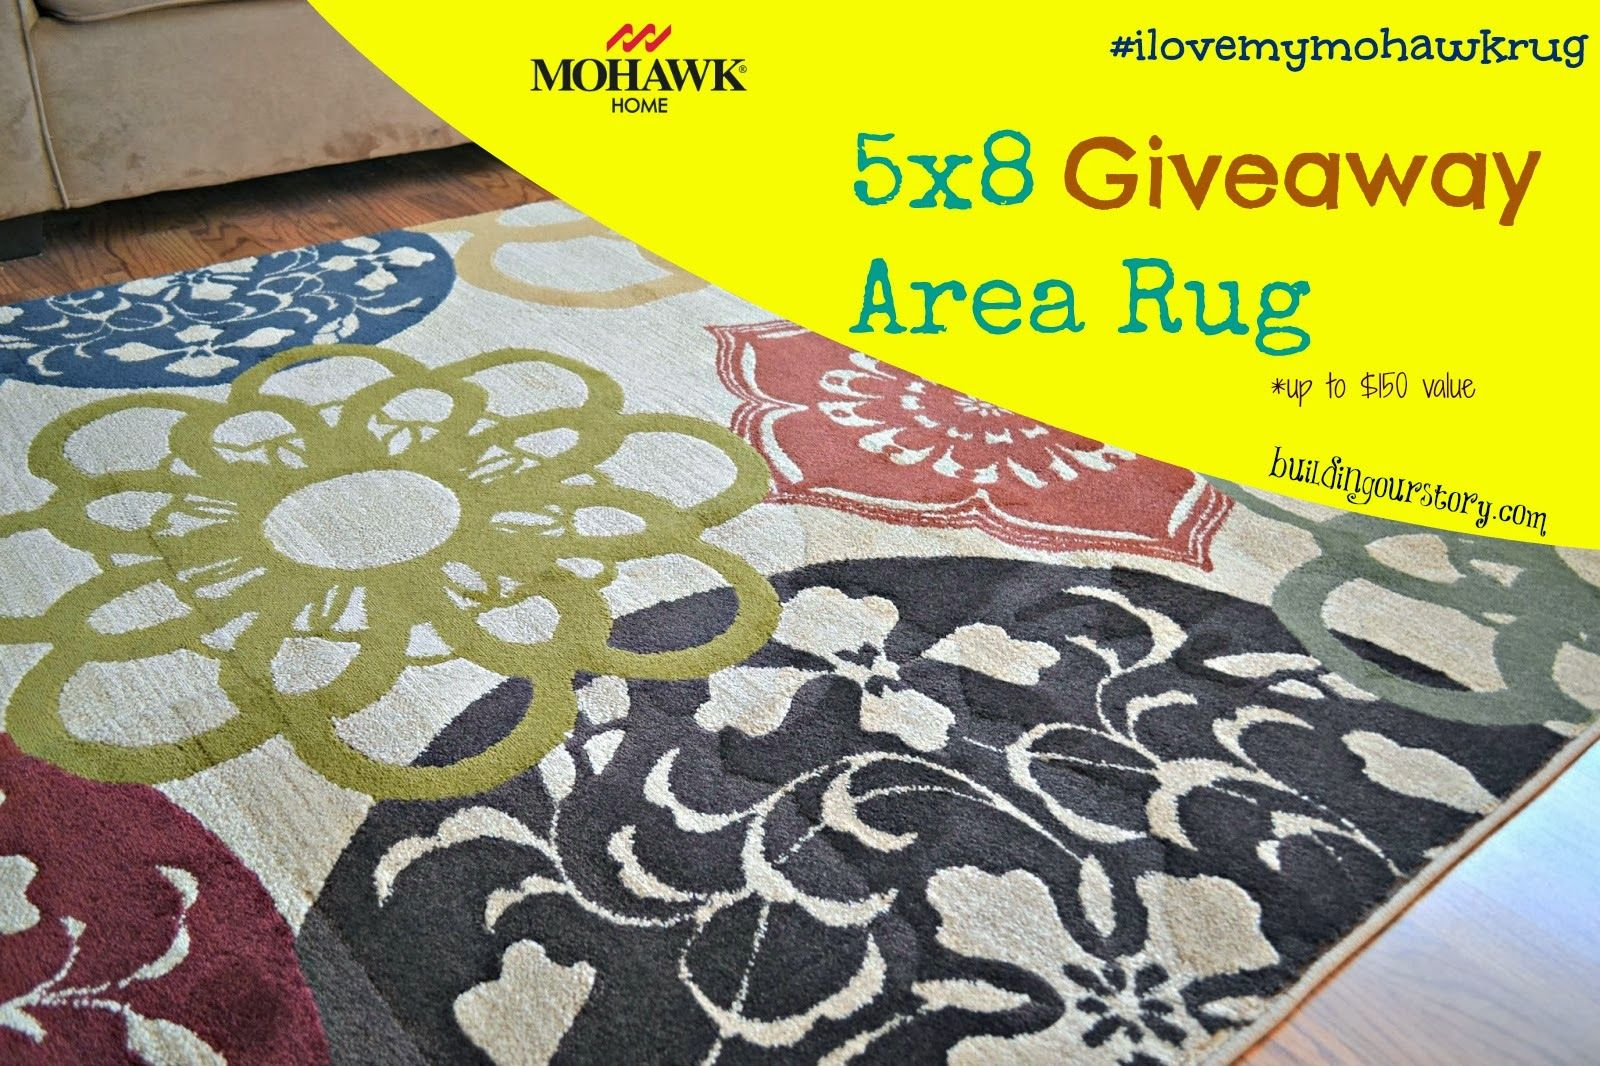 Mohawk home rug review u giveaway ilovemymohawkrug mohawks and